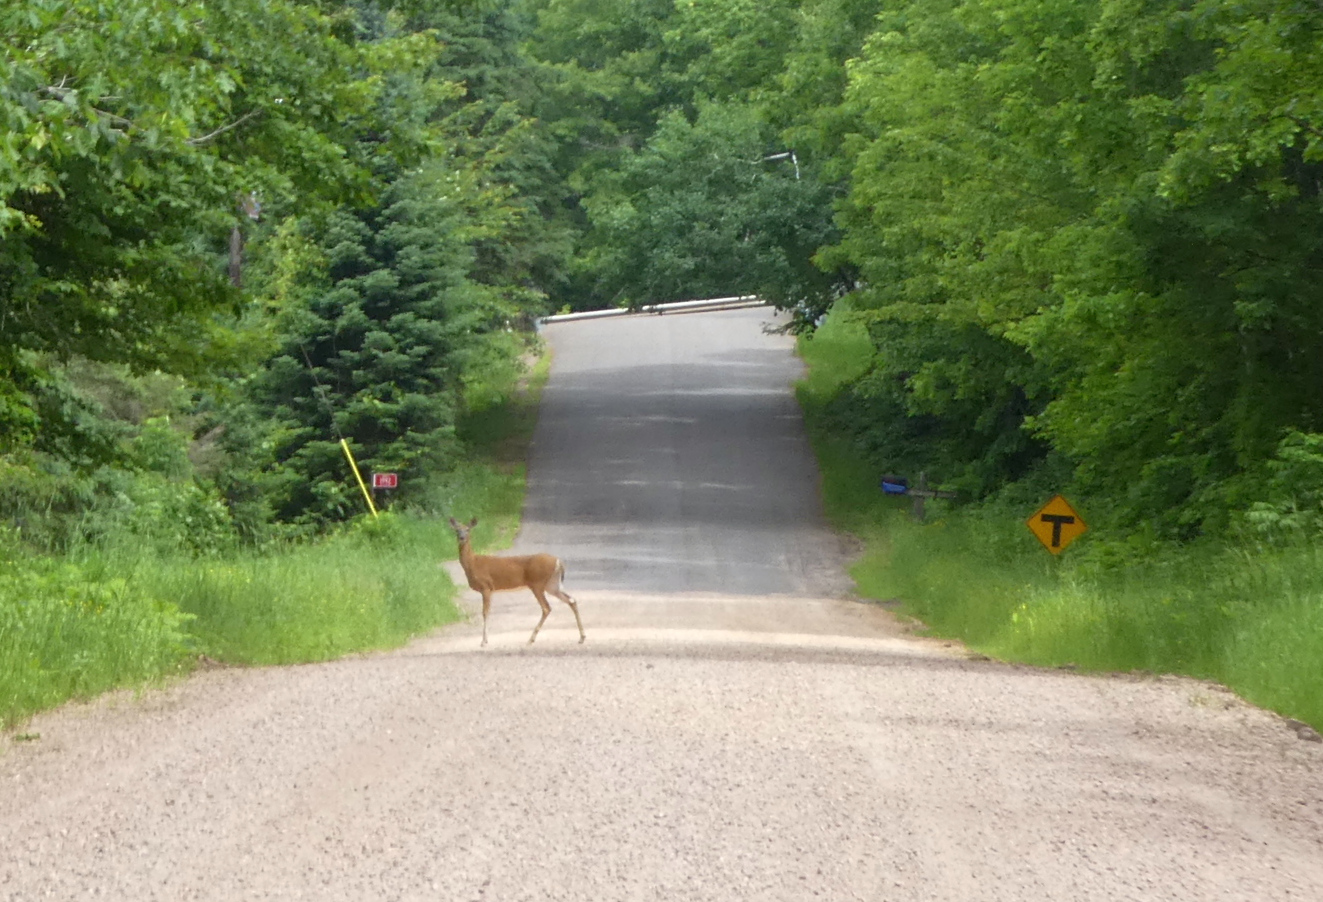 One of the many deer crossing